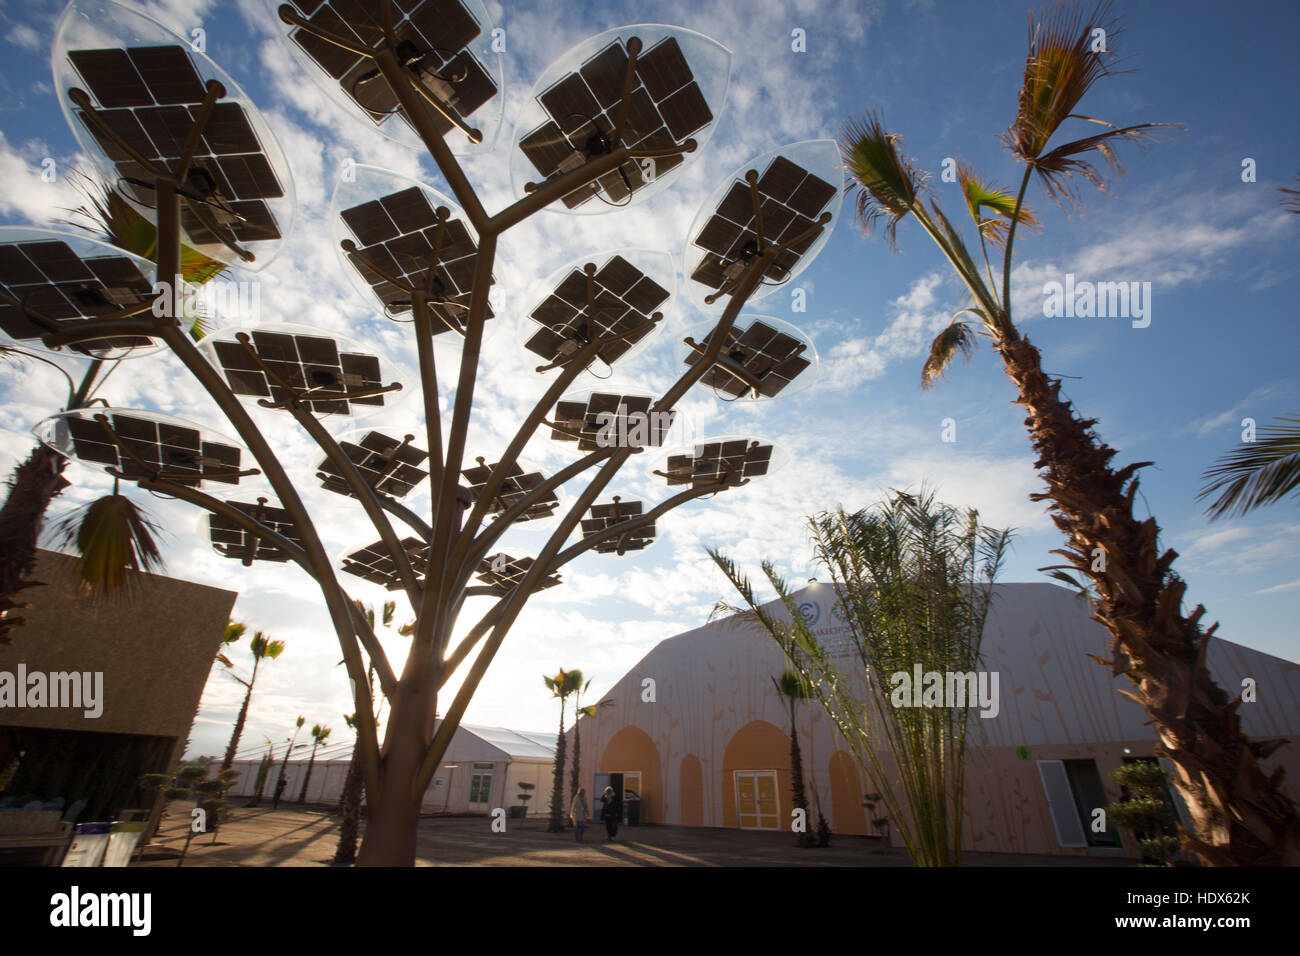 UNFCCC COP22 climate change negotiations conference in Marrakech, Morocco, in 2016. - Stock Image